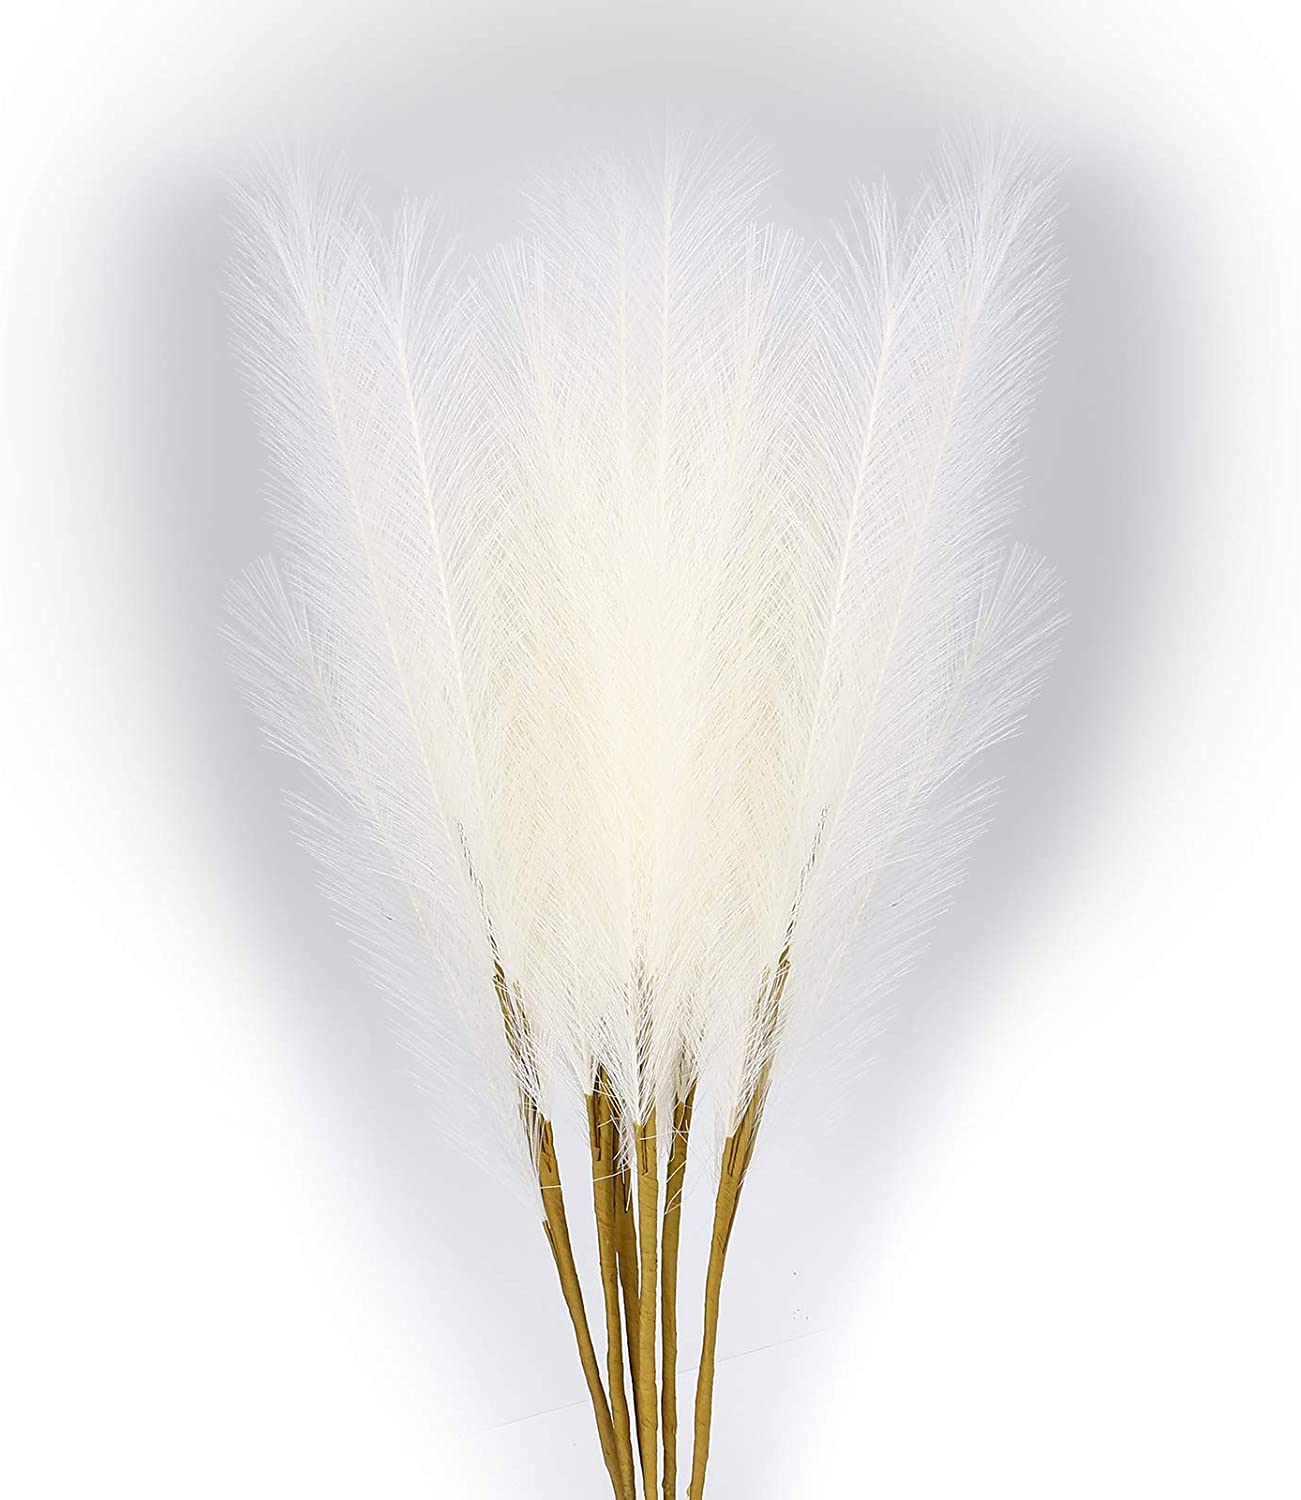 Artificial Pampas Grass,6 PCS Faux Reed Plumes White Reed Feathers for Home Wedding Party Bouquet Decor and Vase Fillings-27in Tall